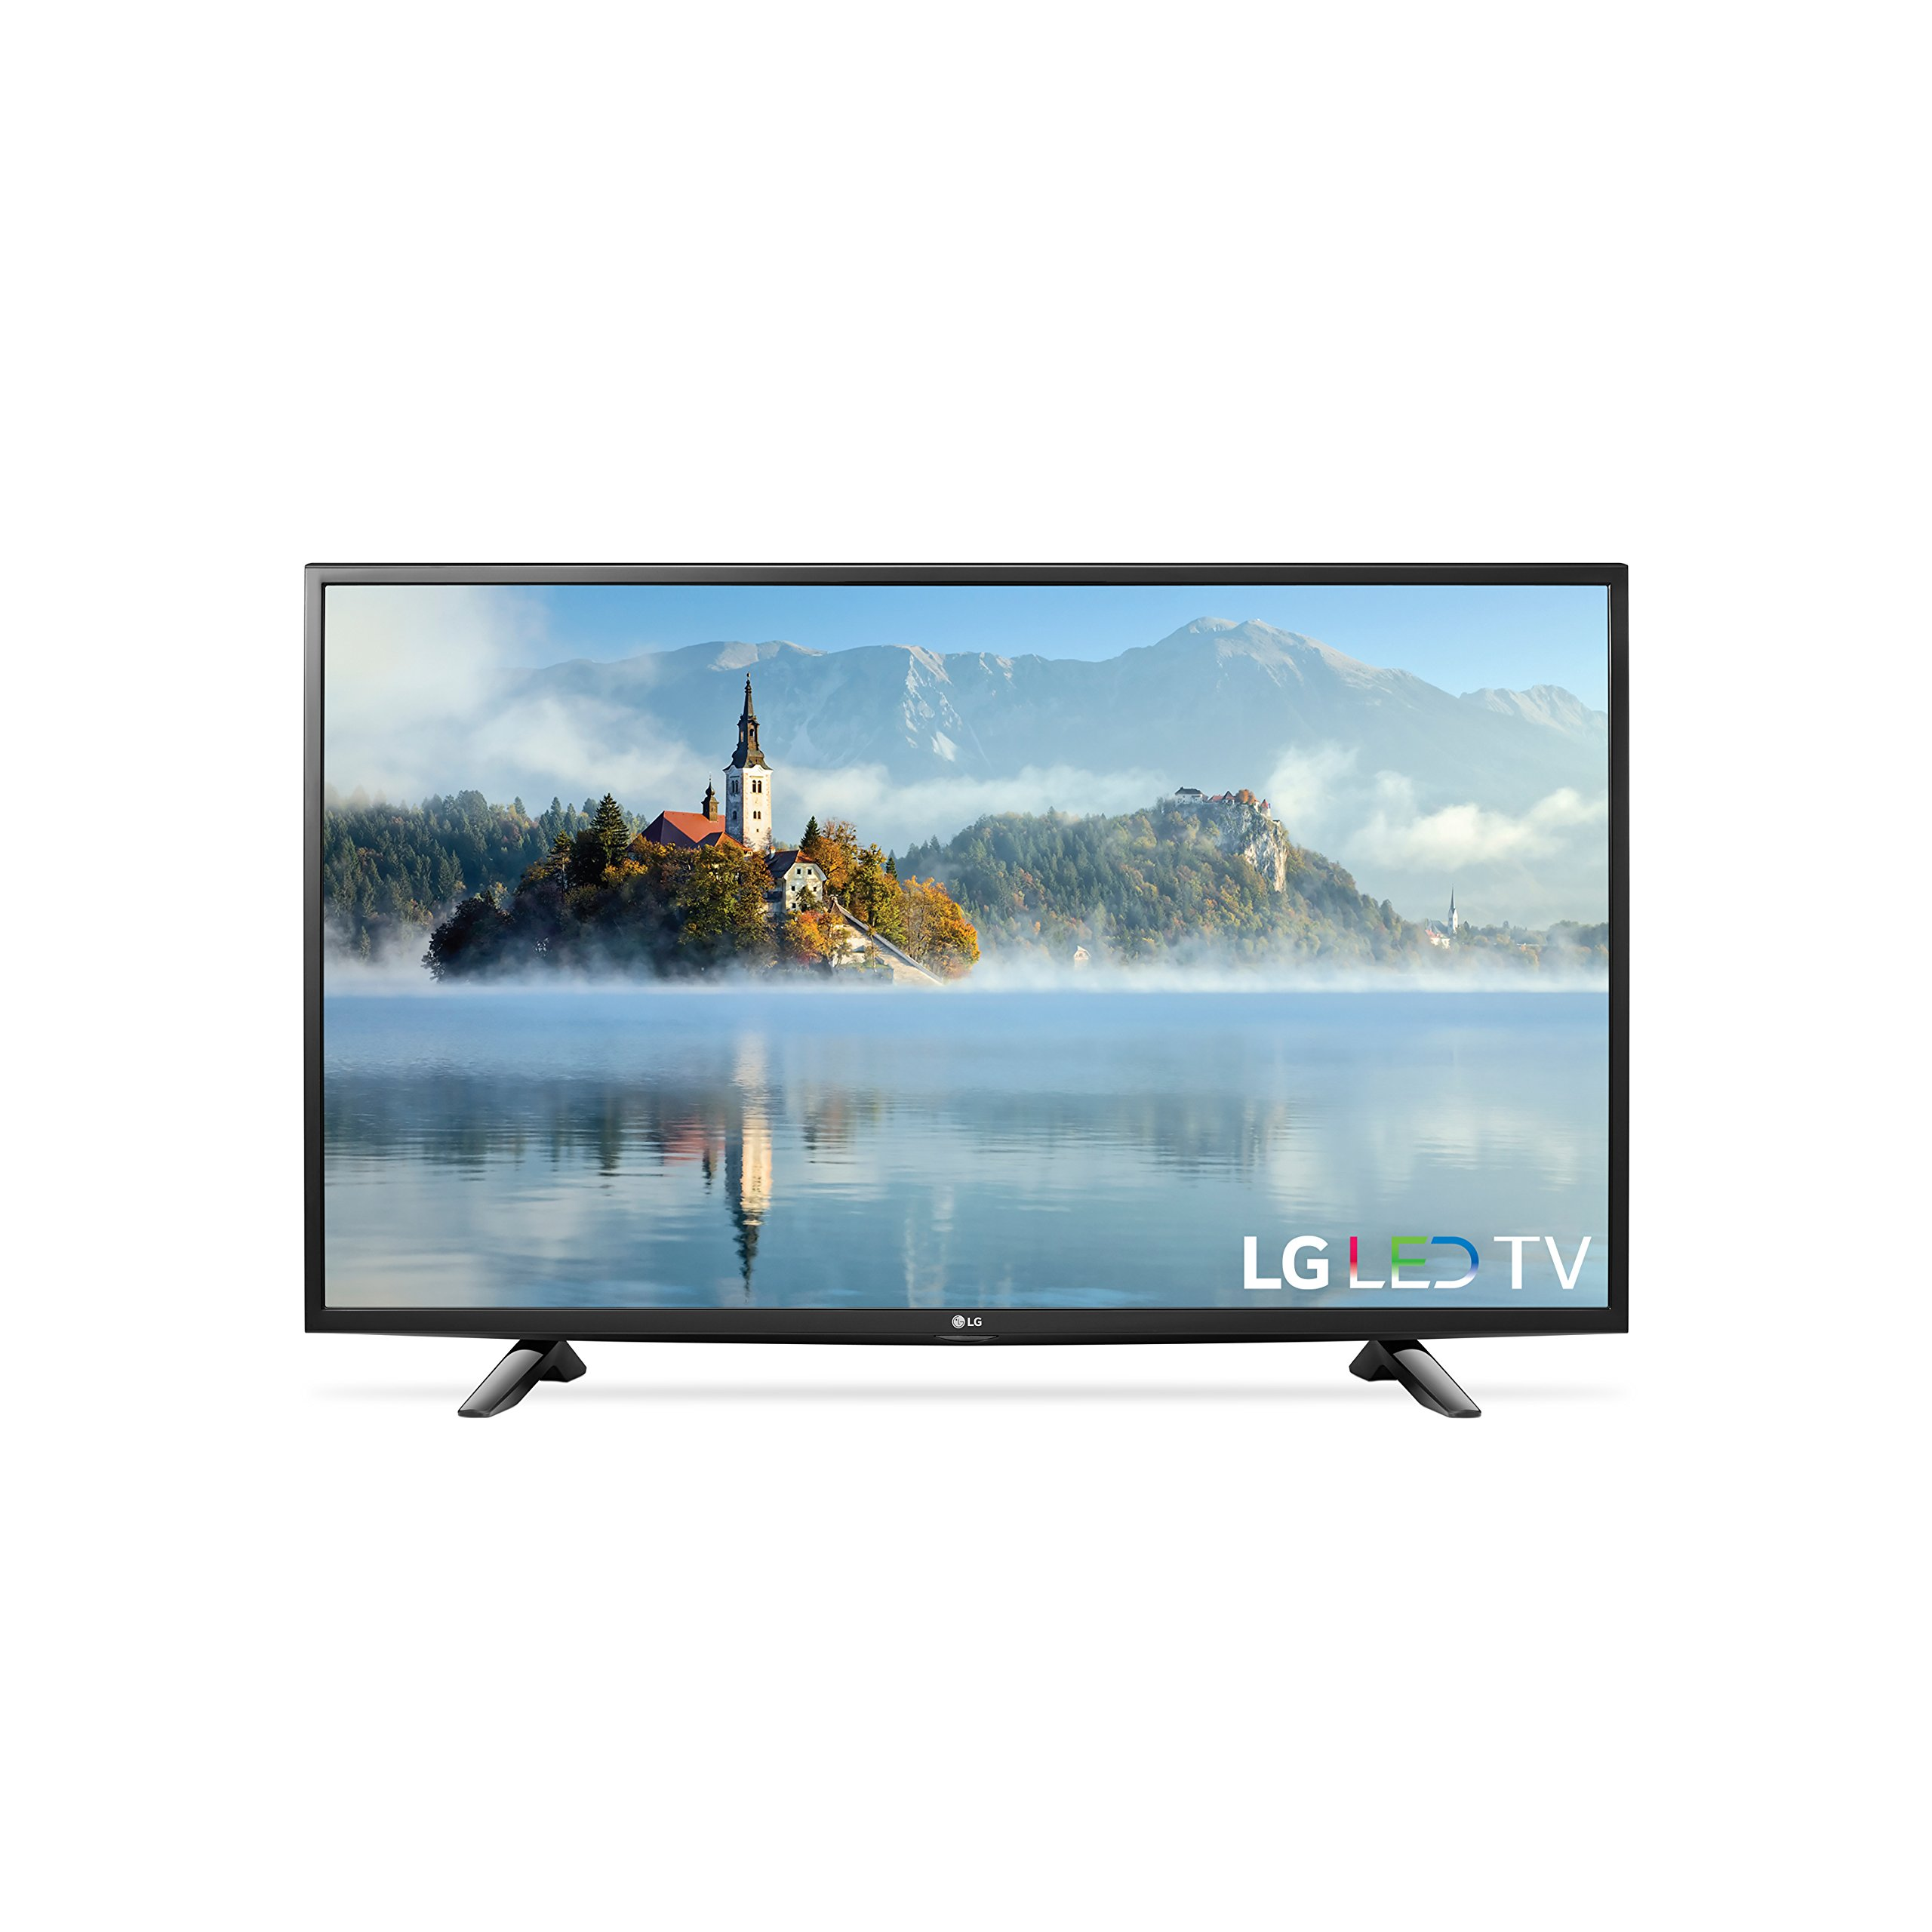 LG Electronics 49LJ5100 49-Inch 1080p LED TV (2017 Model) by LG